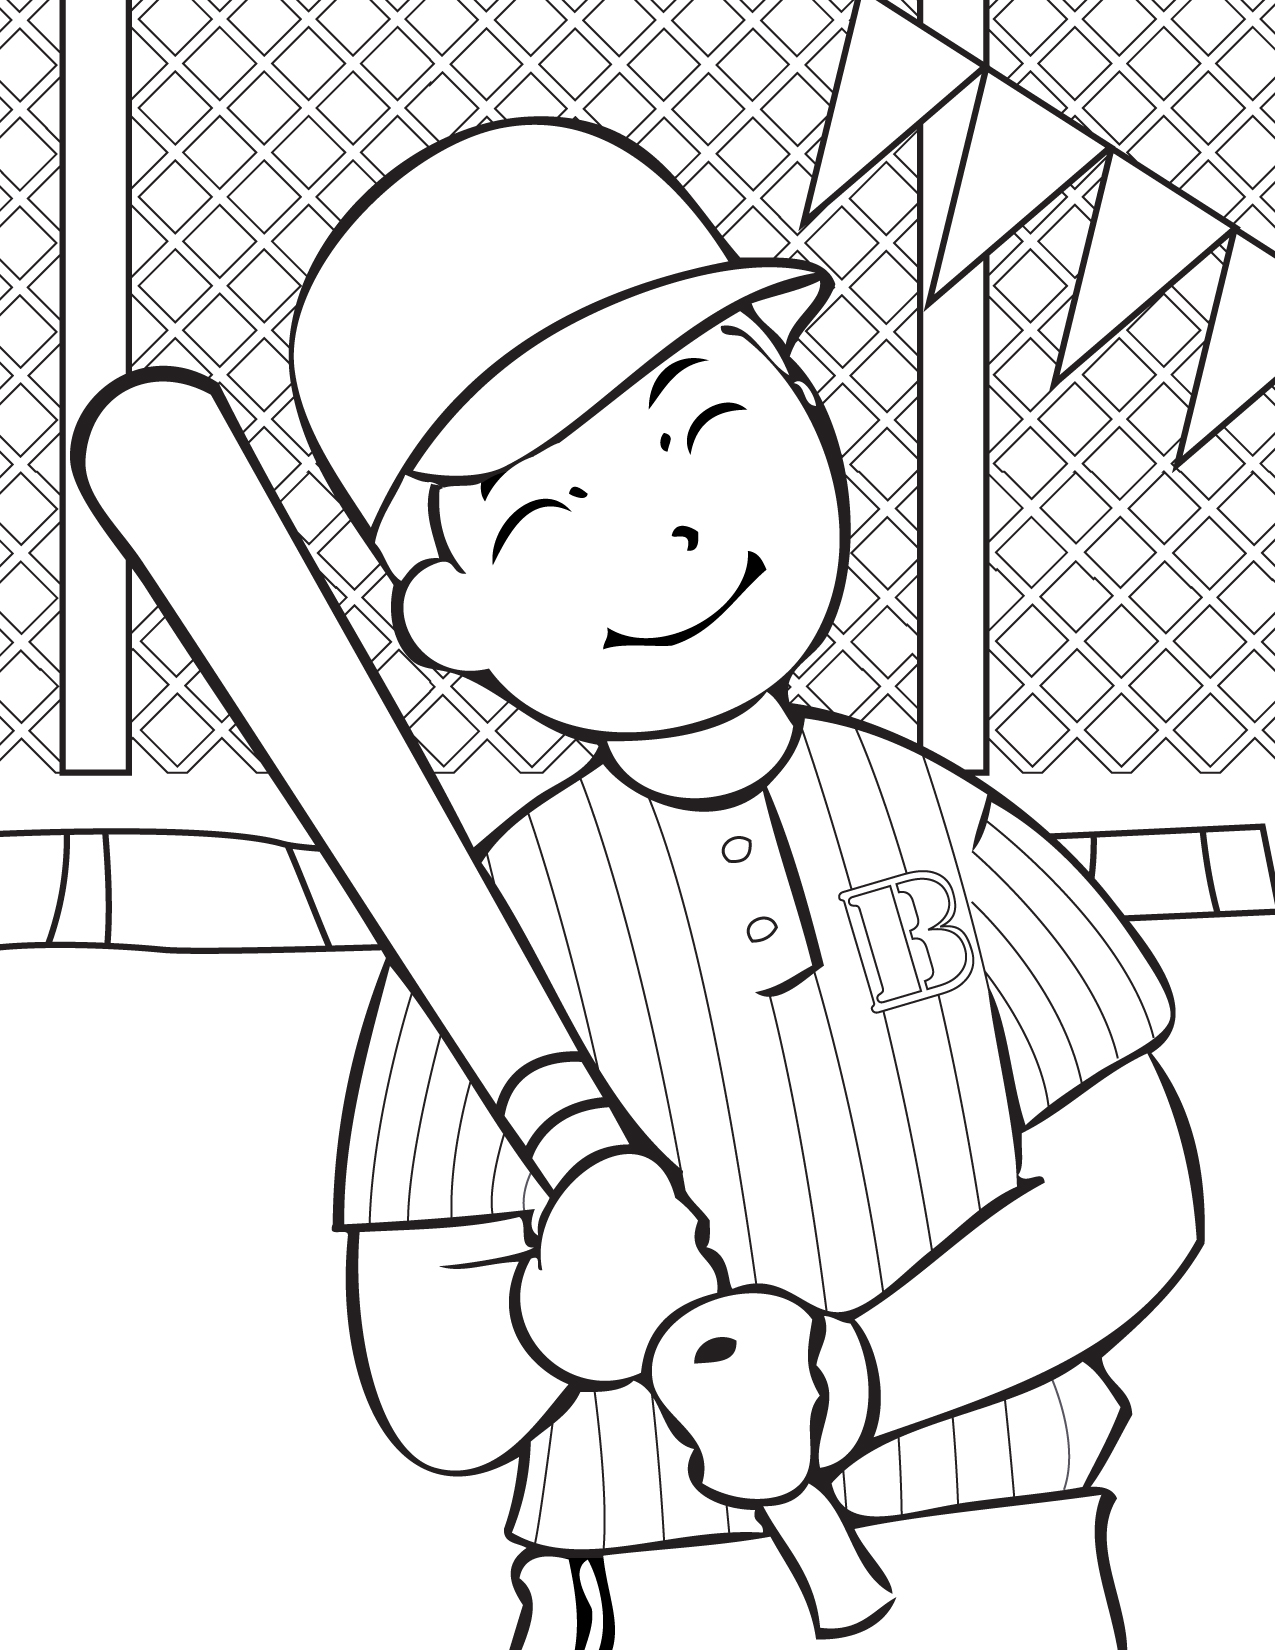 download baseball coloring pages 15 print - Sports Coloring Sheets To Print